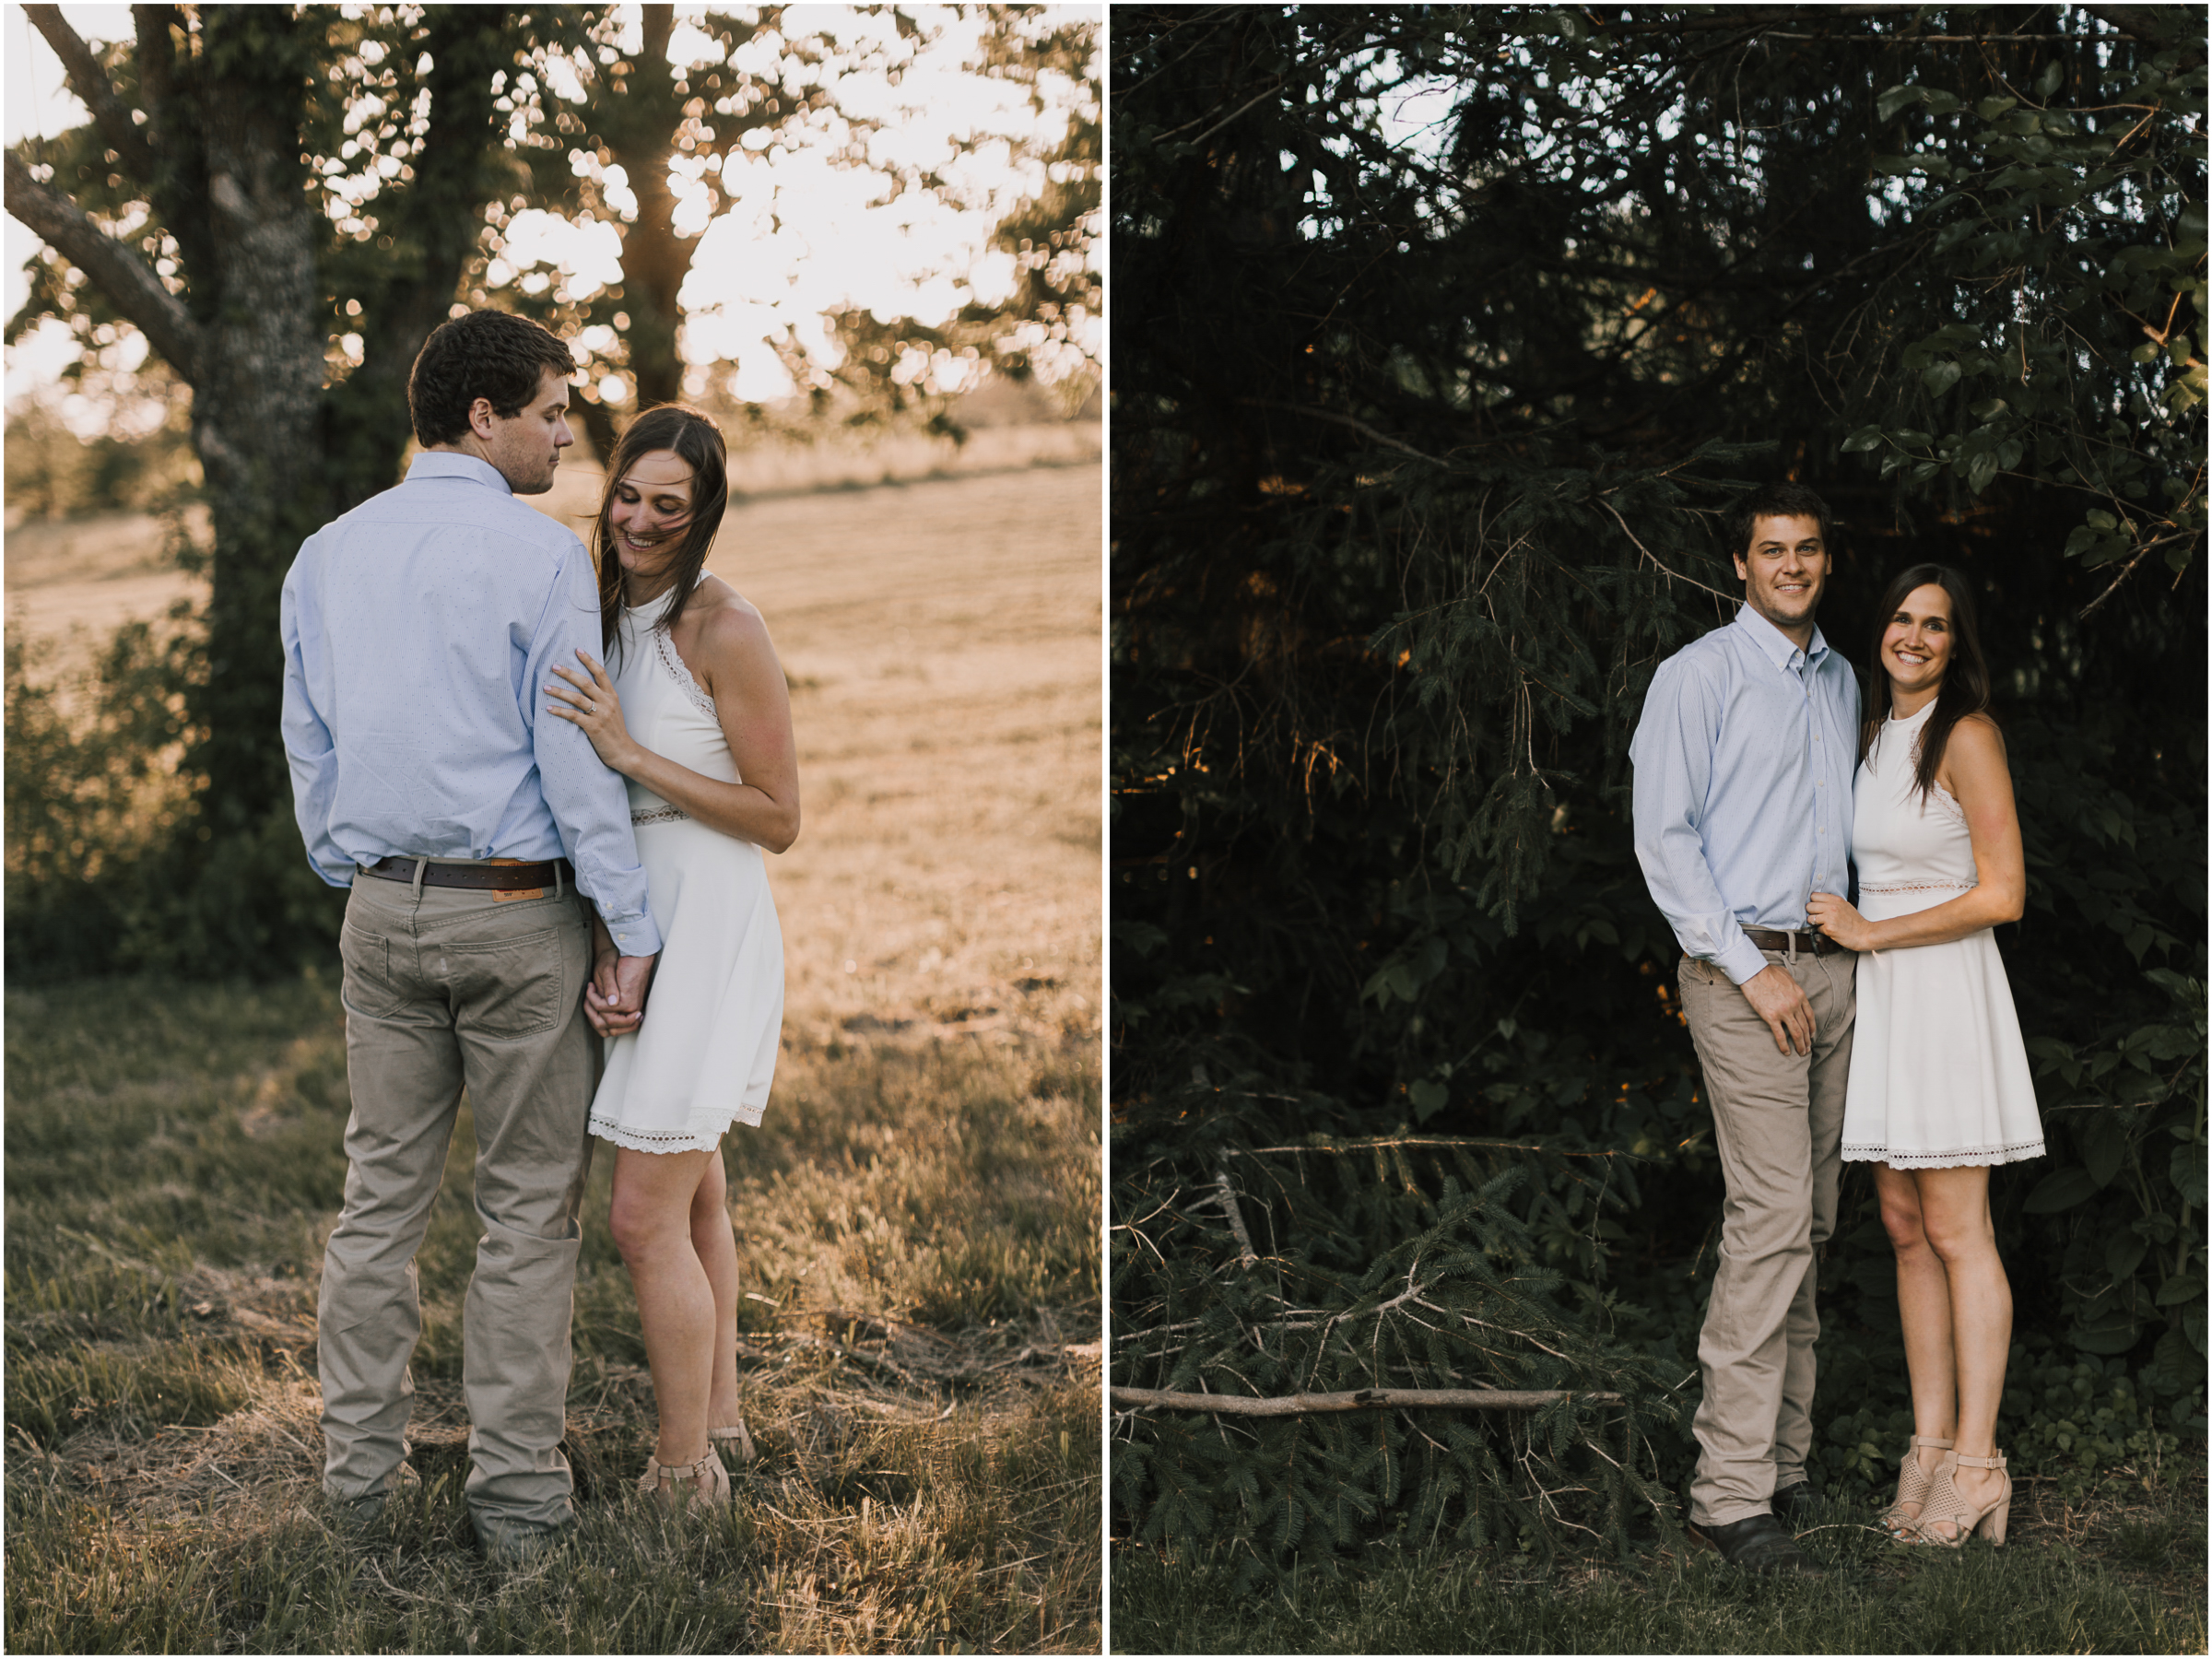 alyssa barletter photography shawnee mission park summer rustic done right engagement session-15.jpg